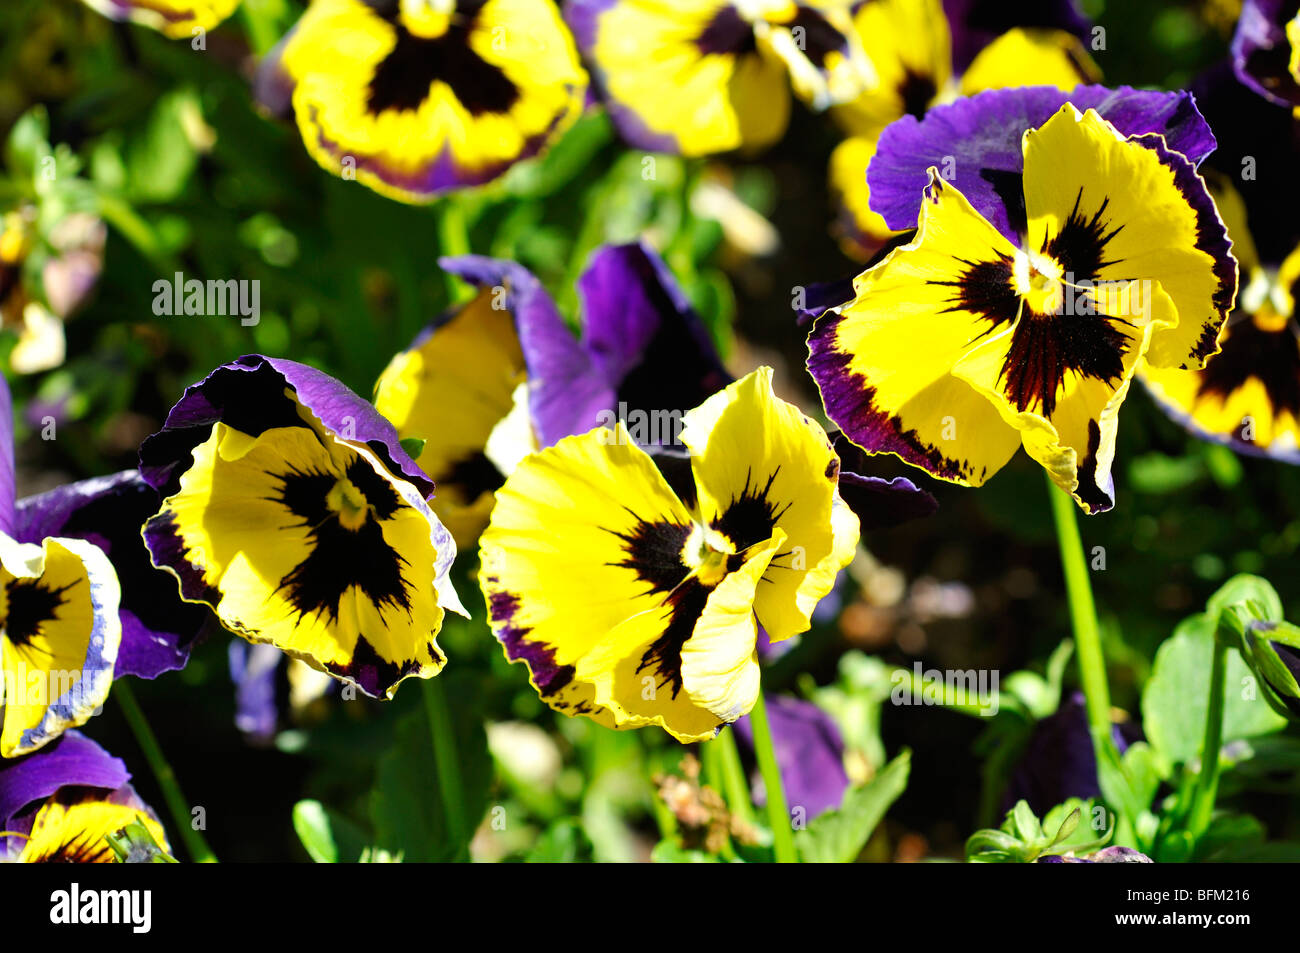 Pansies aka pansy violets (Viola tricolor hortensis) - Stock Image